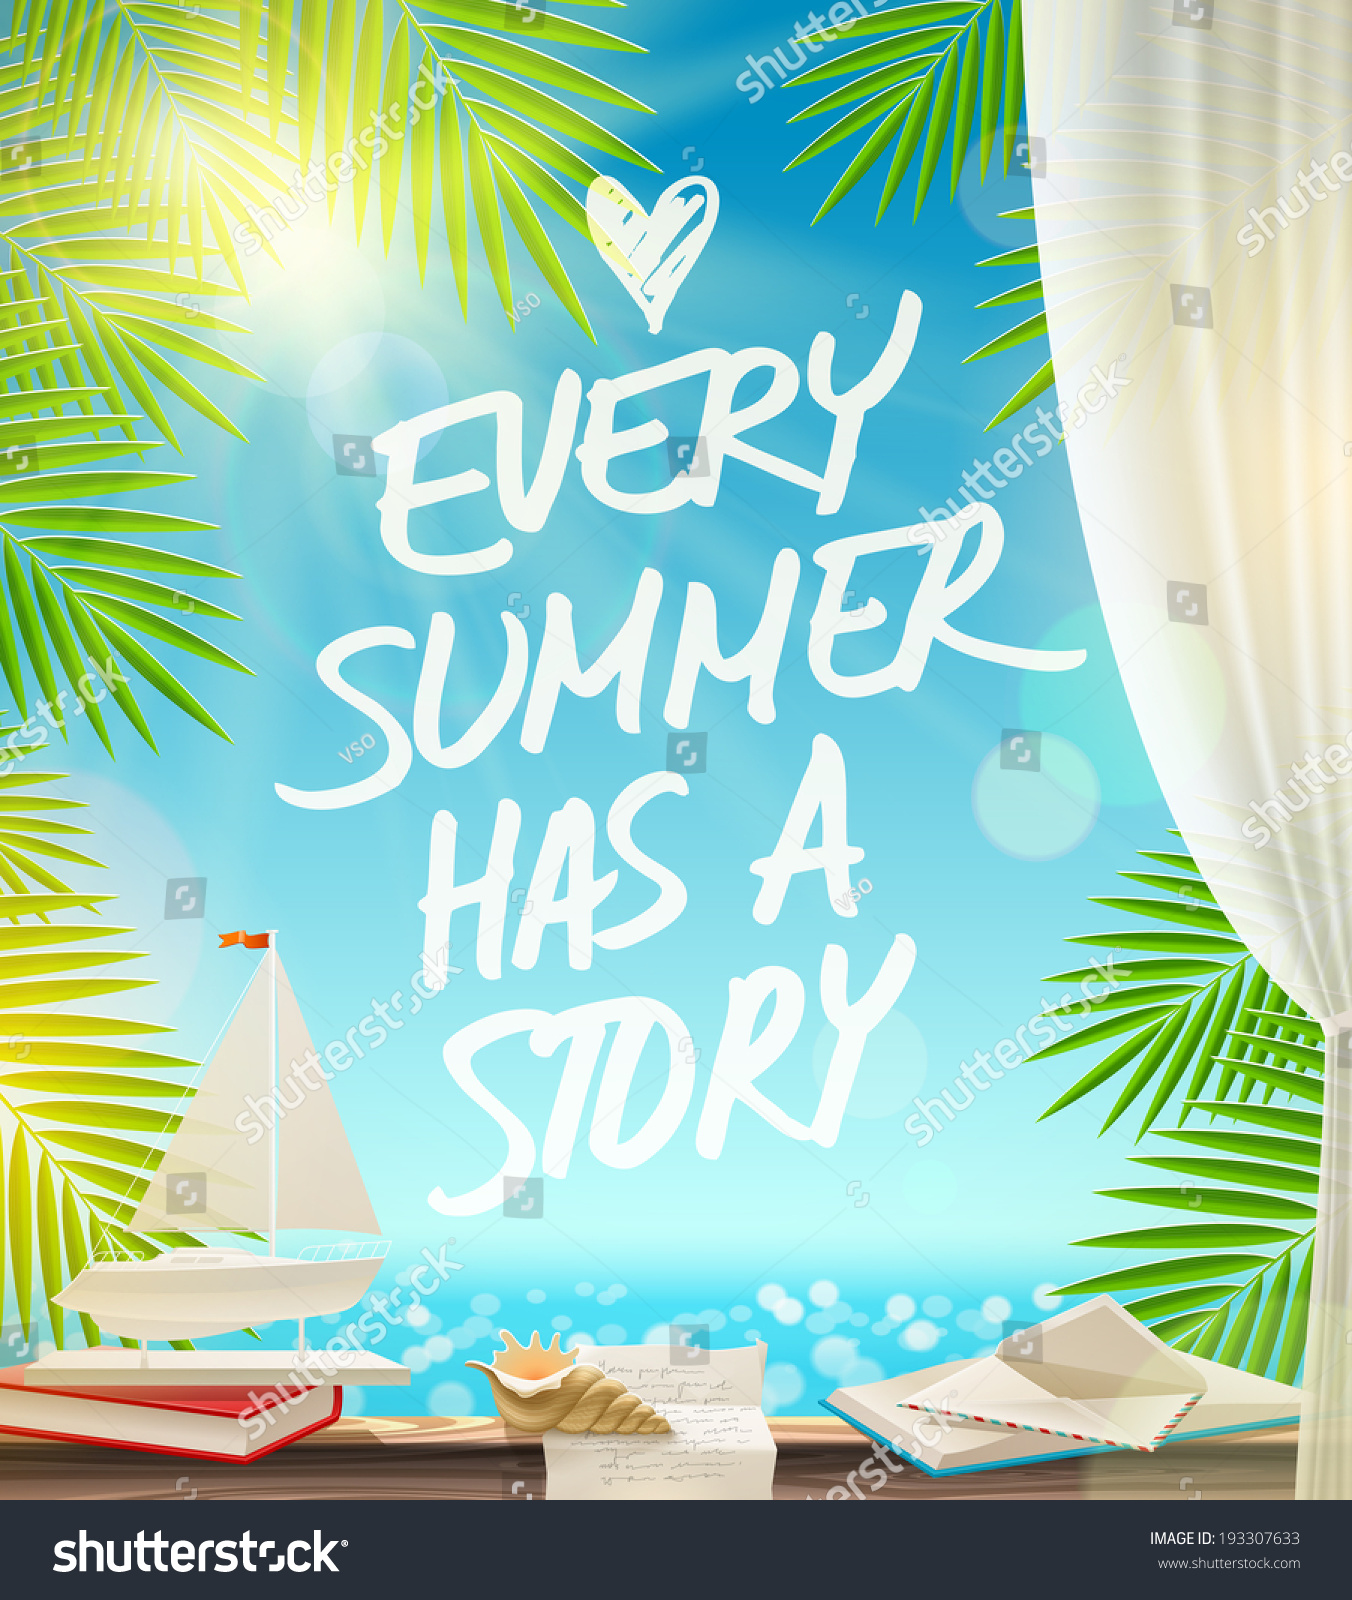 Charming Every Summer Has Story Summer Vacation Stock Vector 193307633   Shutterstock Awesome Design